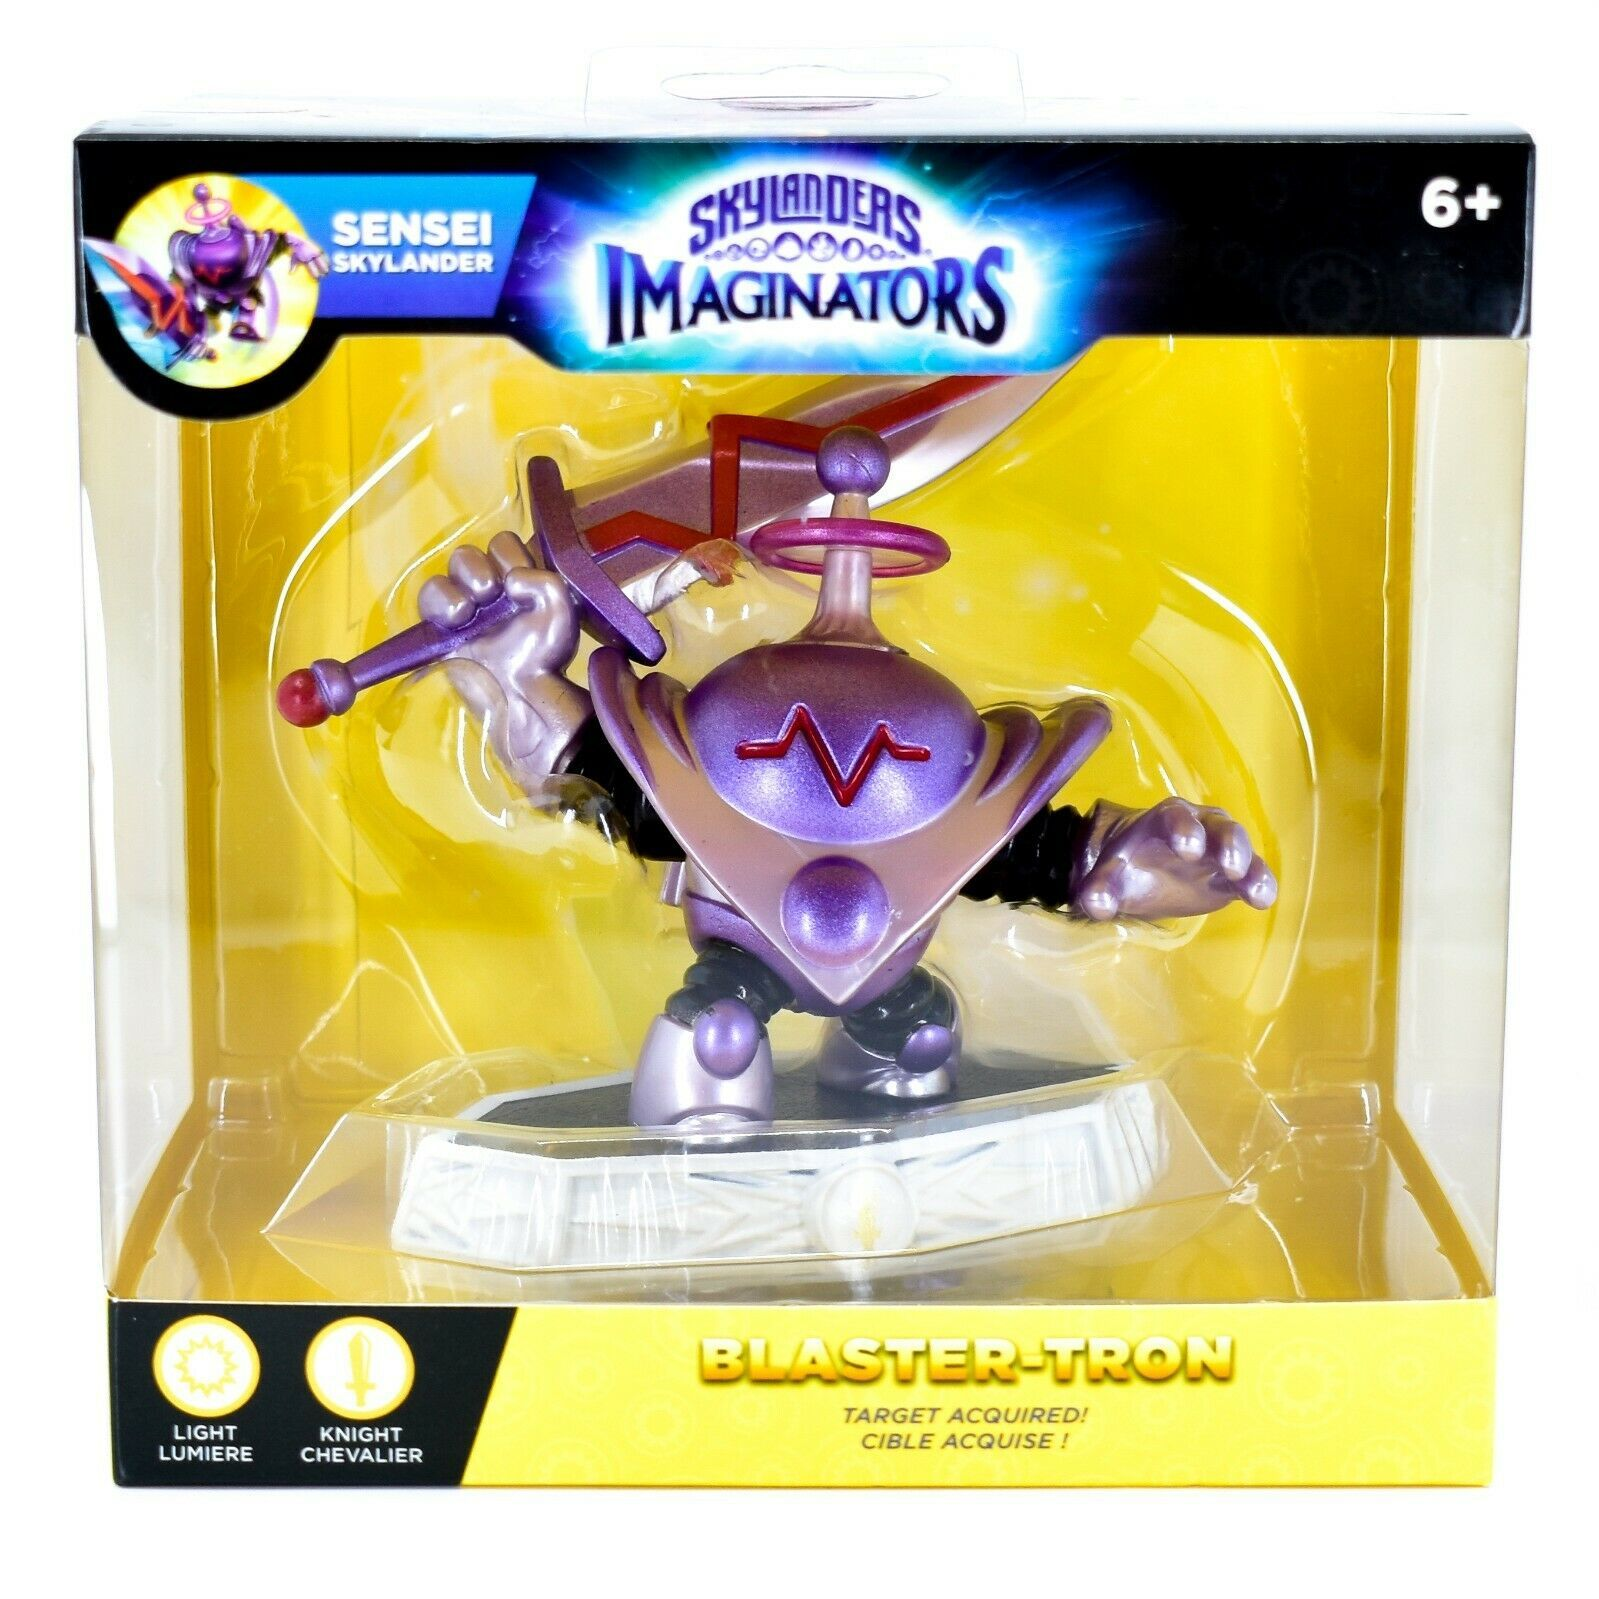 Skylanders Imaginators Light Knight Sensei Skylander Blaster-Tron Action Figure